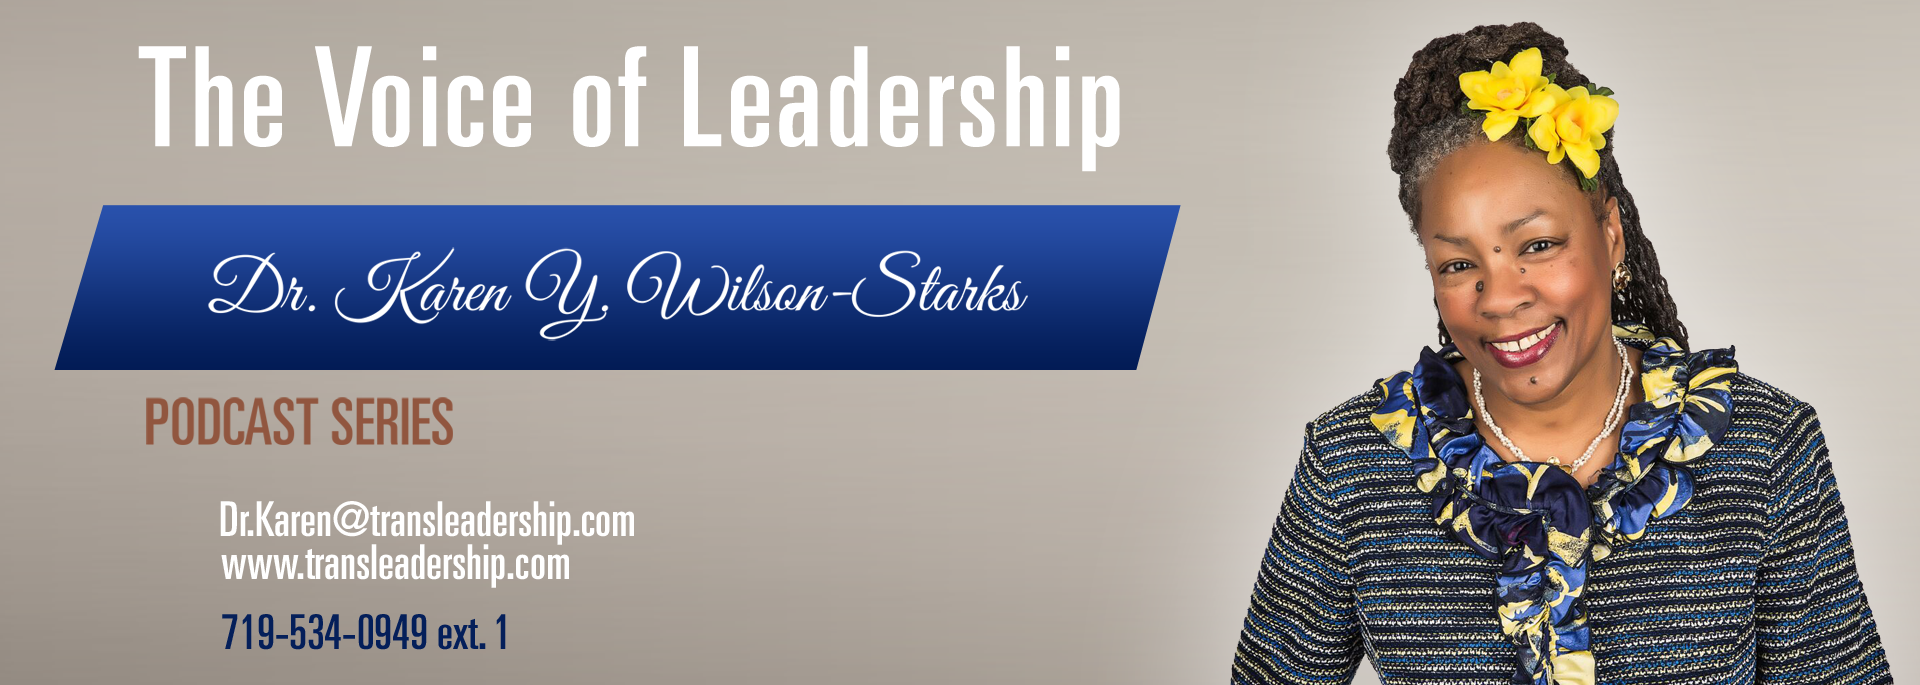 THE VOICE OF LEADERSHIP channel